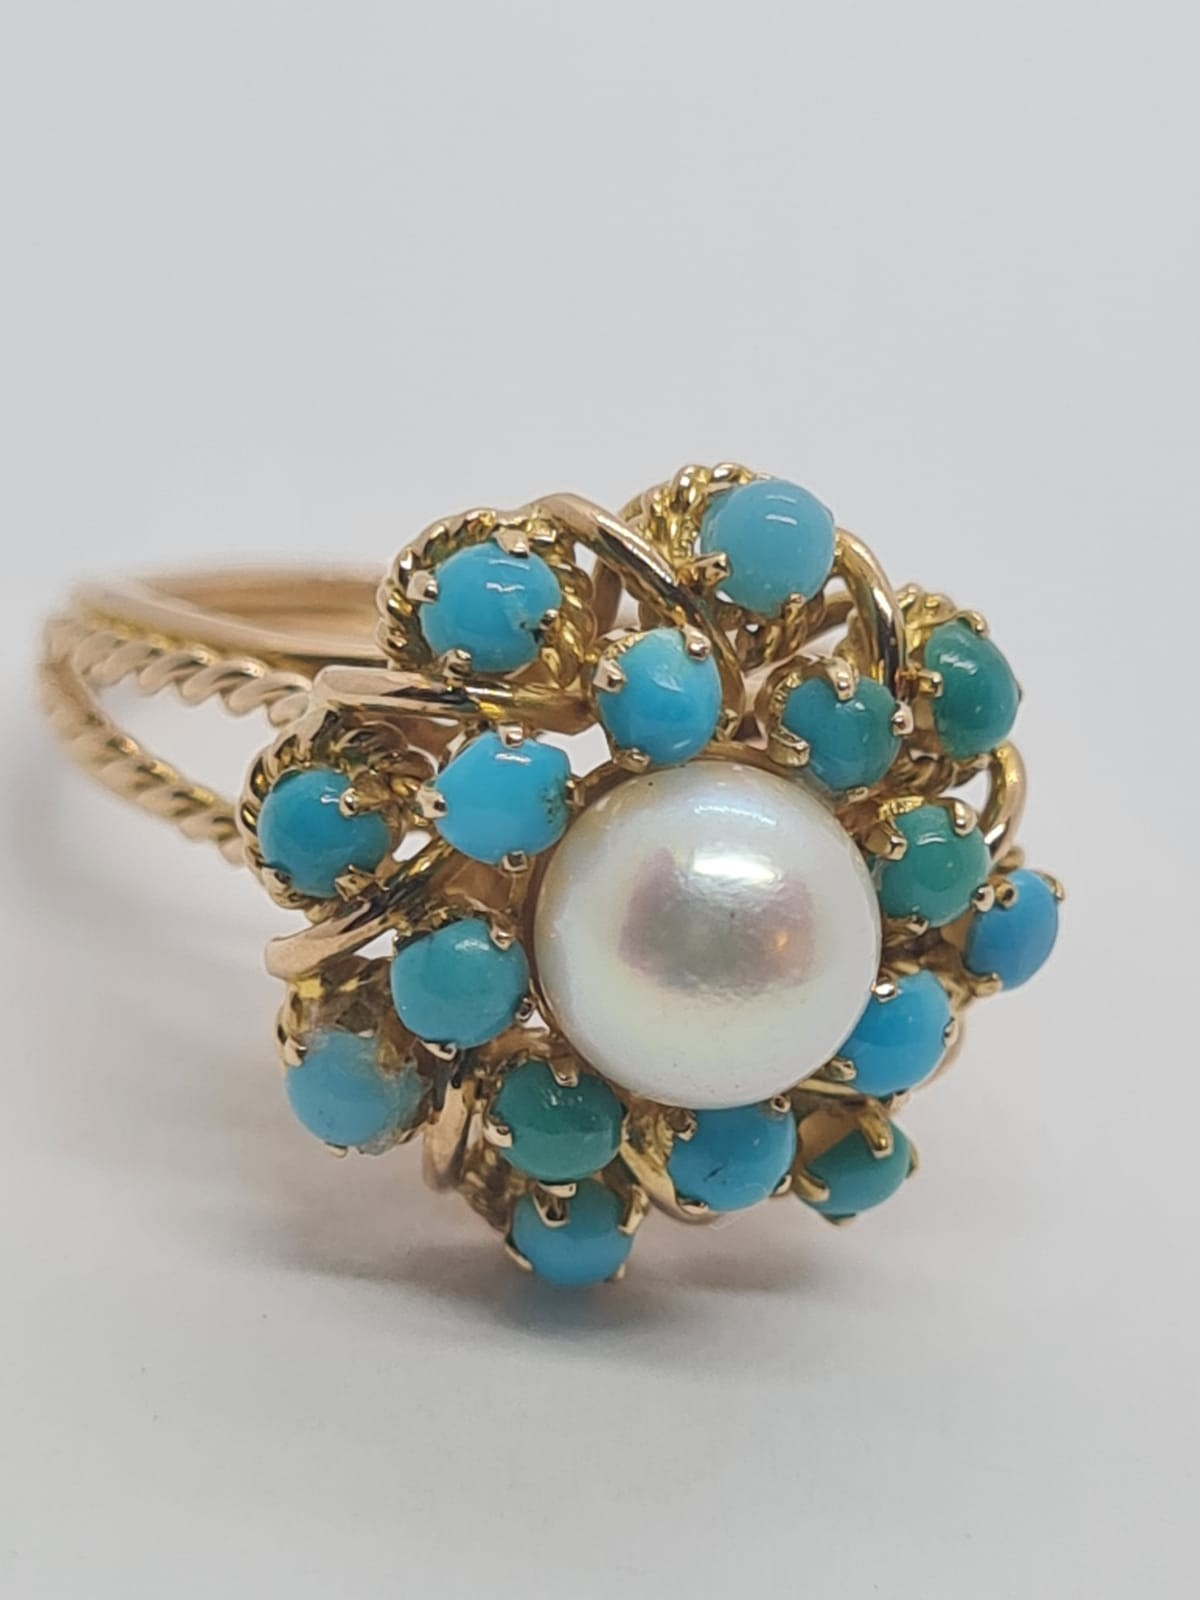 18k yellow gold TURQUISE AND PEARL CLUSTER RING, weight 5.3g and size J1/2 - Image 6 of 8